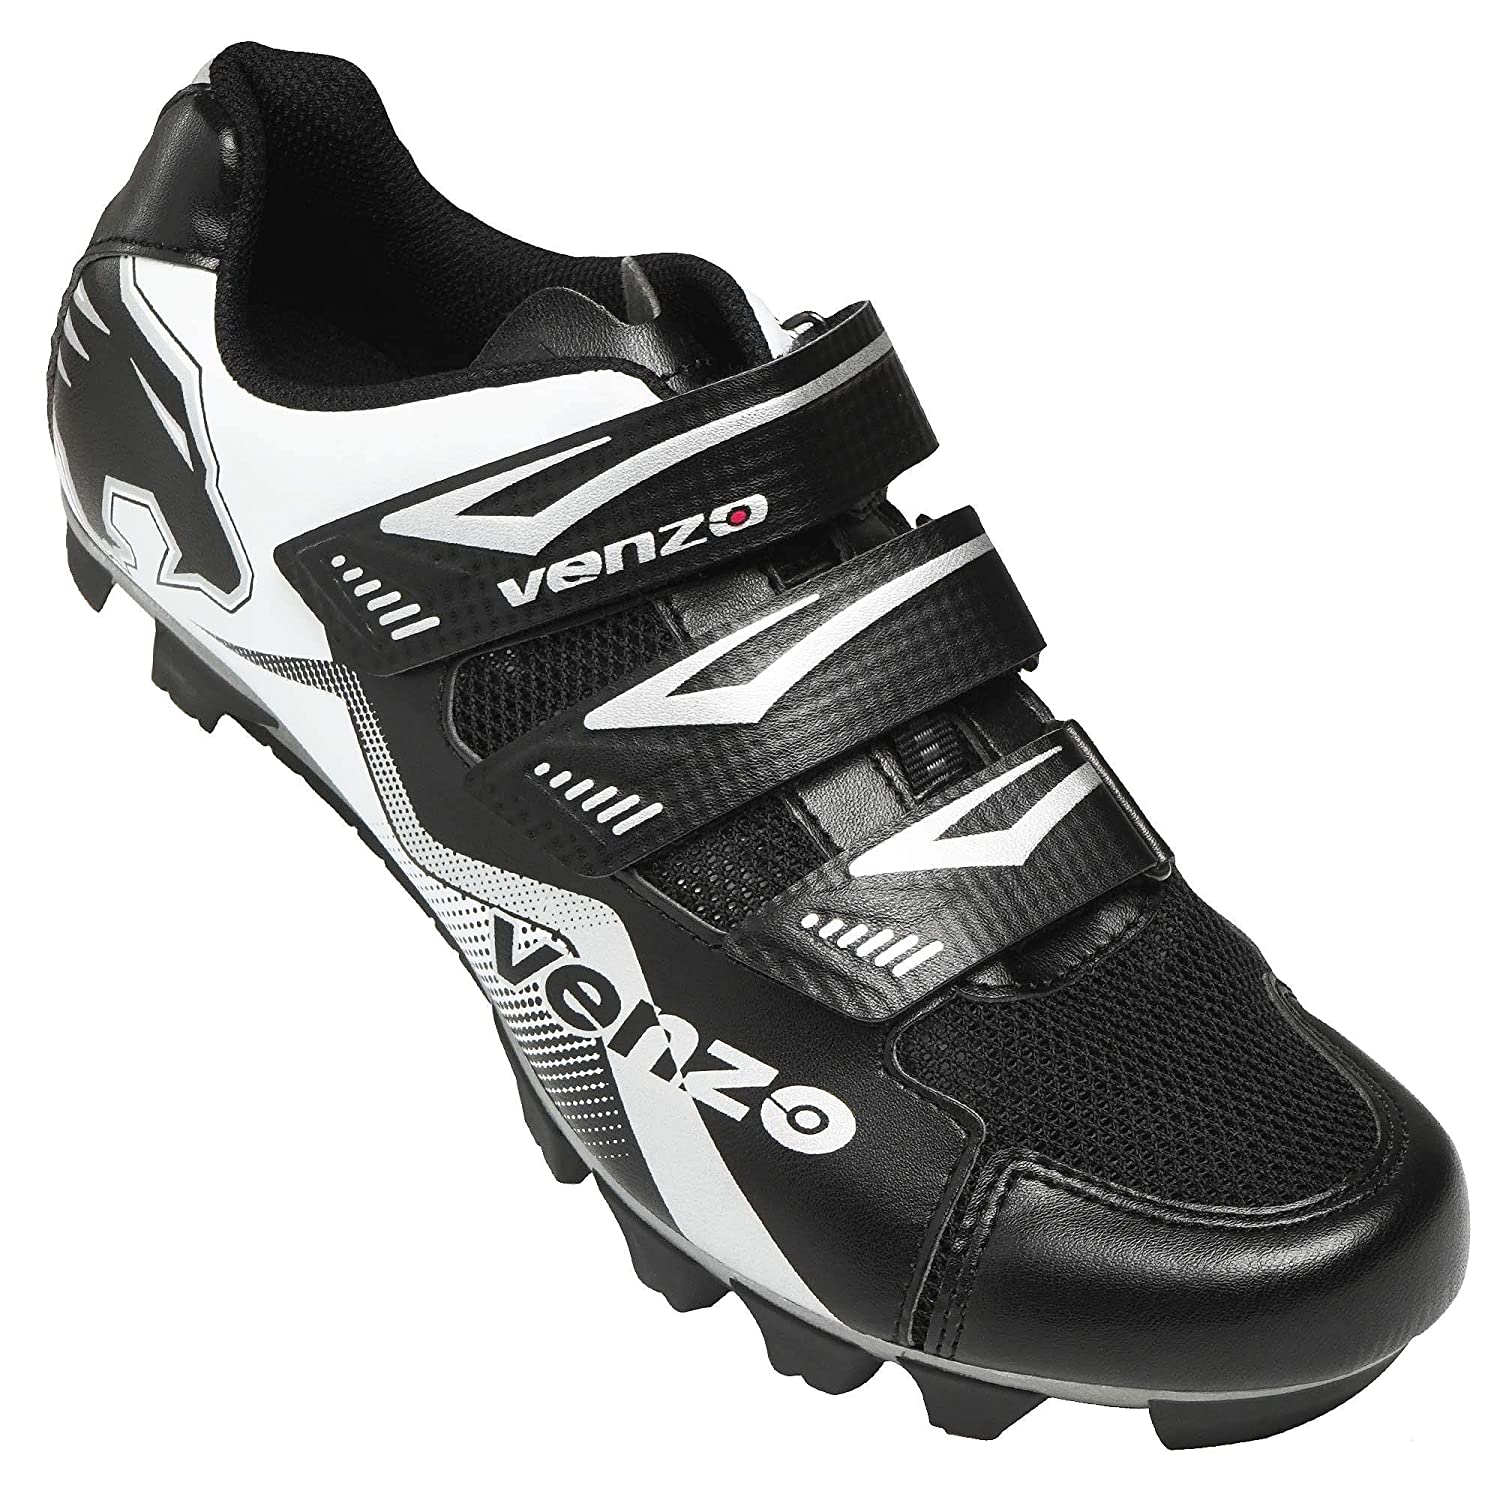 Venzo Mountain Men s Bike Bicycle Cycling Shoes – Compatible for Shimano SPD Cleats – Good for Spin Cycle, Off Road and MTB